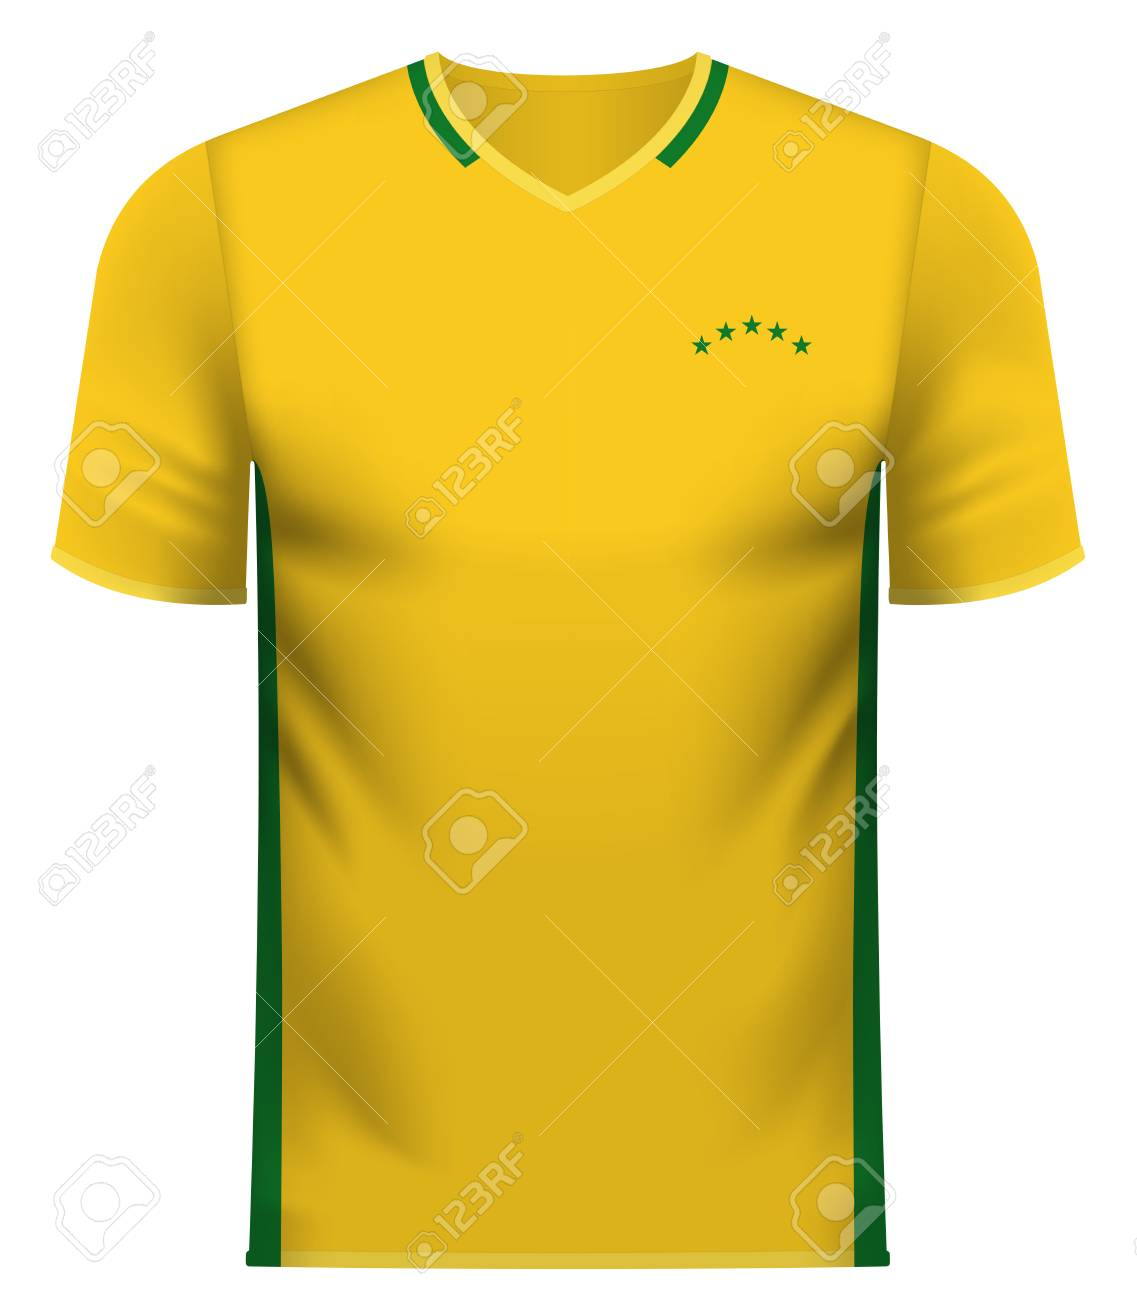 45824b03bd6 Brazil national soccer team shirt in generic country colors for fan apparel.  Stock Vector -